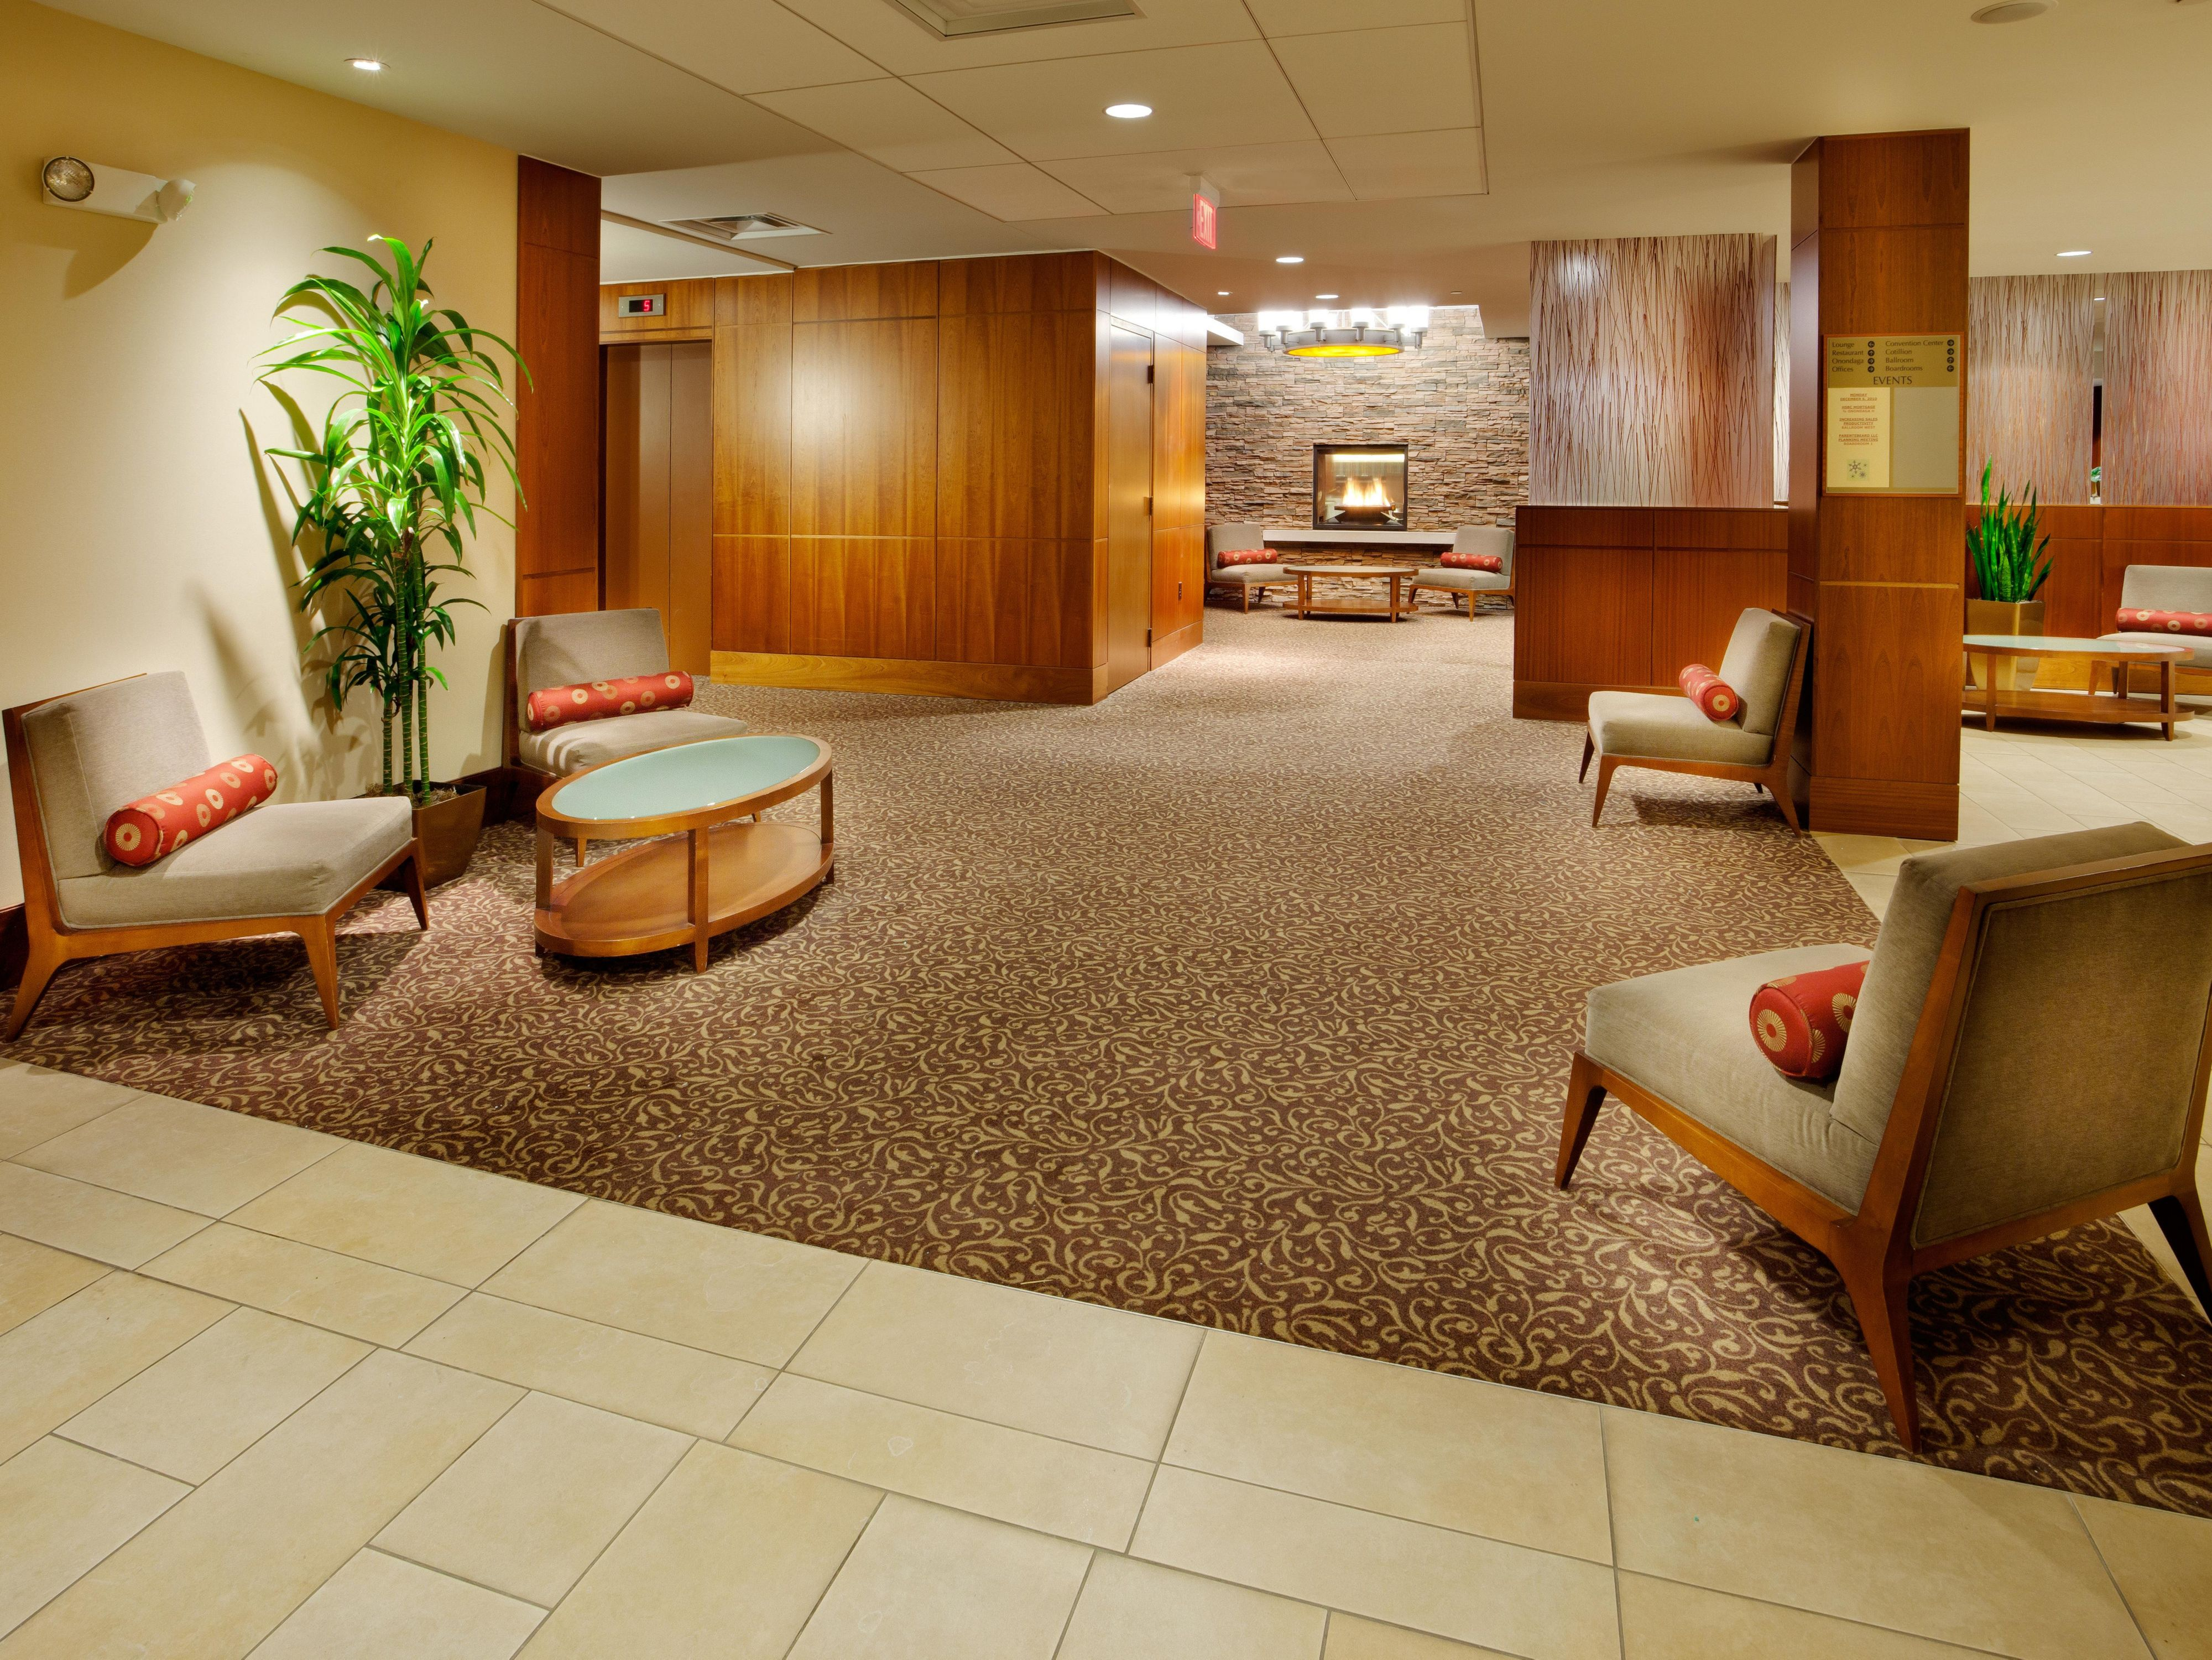 Holiday Inn SyracuseLiverpoolExit 37 Hotel by IHG